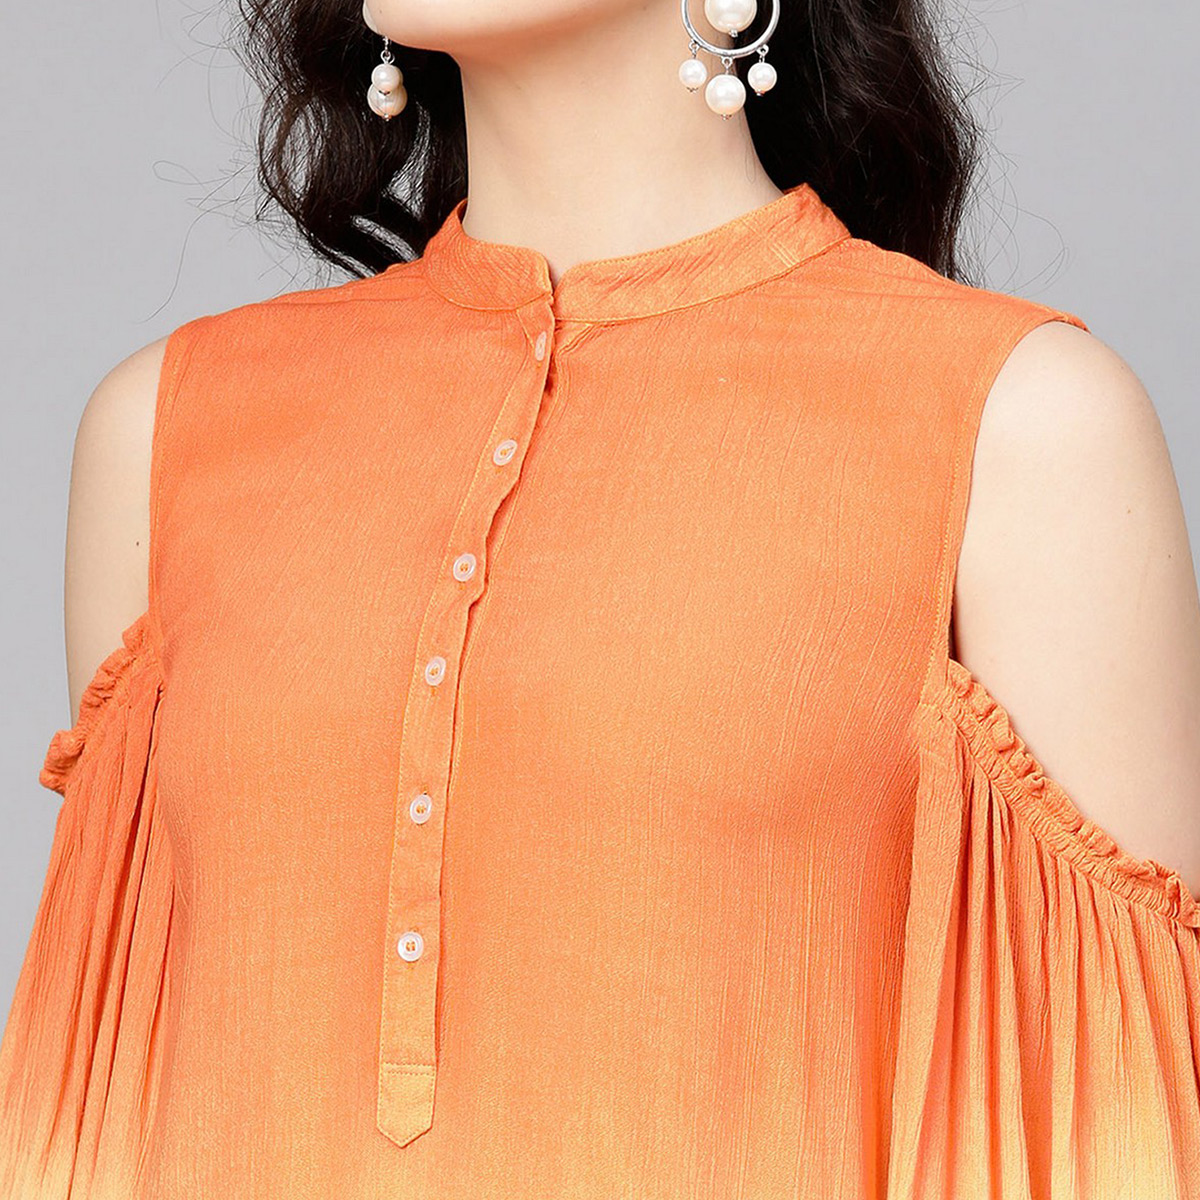 Exotic Orange-White Colored Party Wear Cold Shoulder Printed Rayon Crepe Kurti